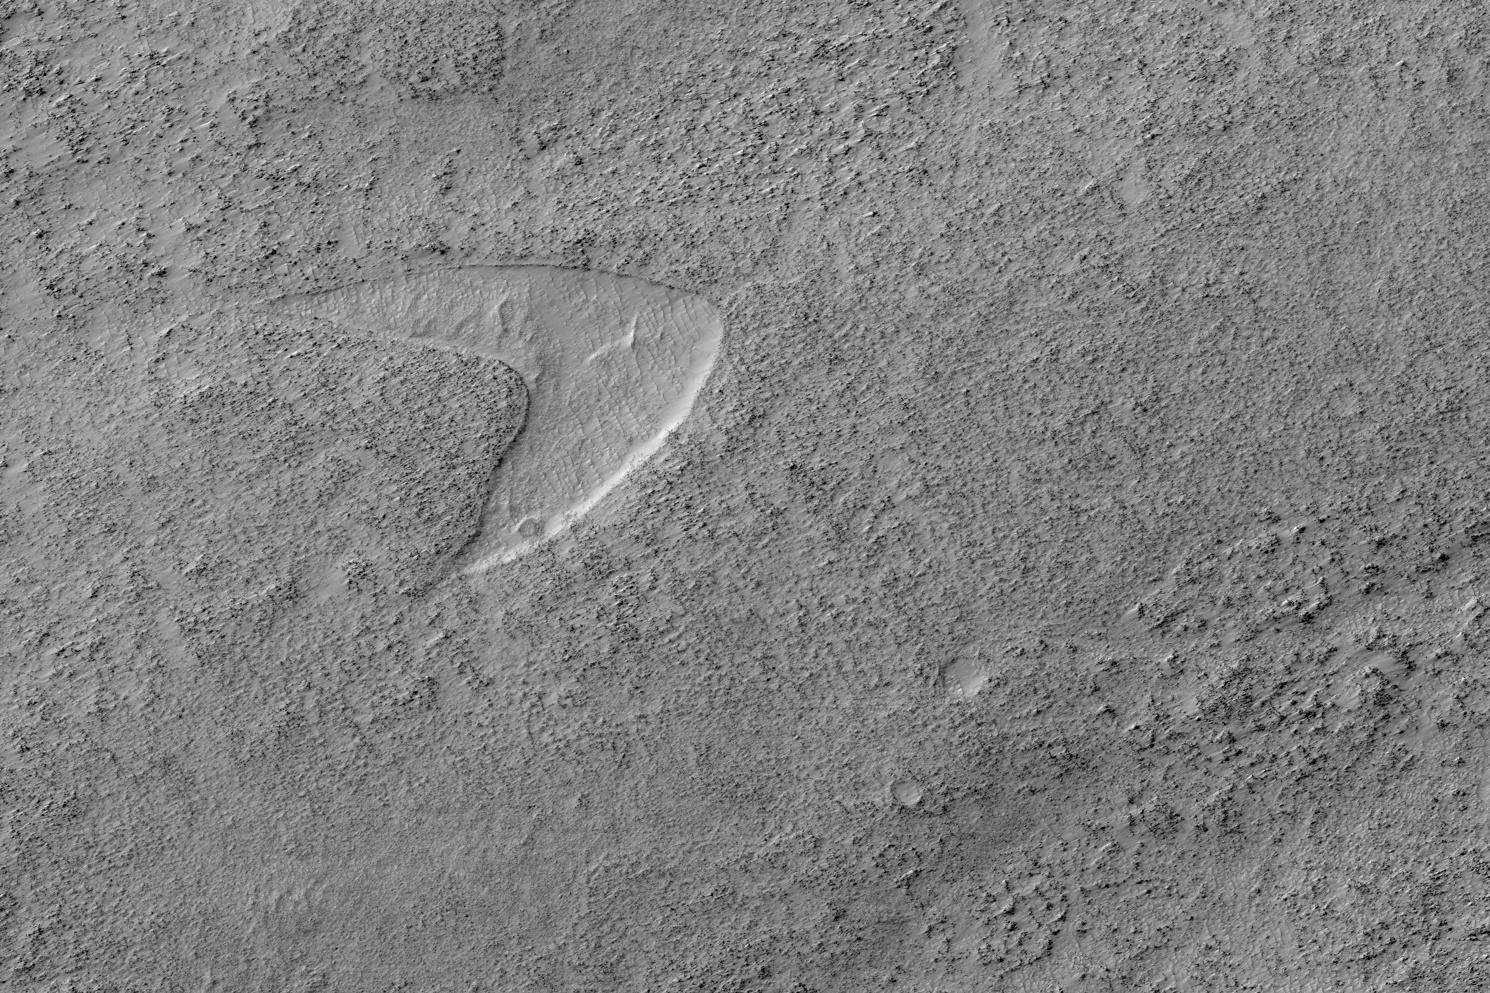 Nasa spots huge 'Star Trek' logo on the surface of Mars